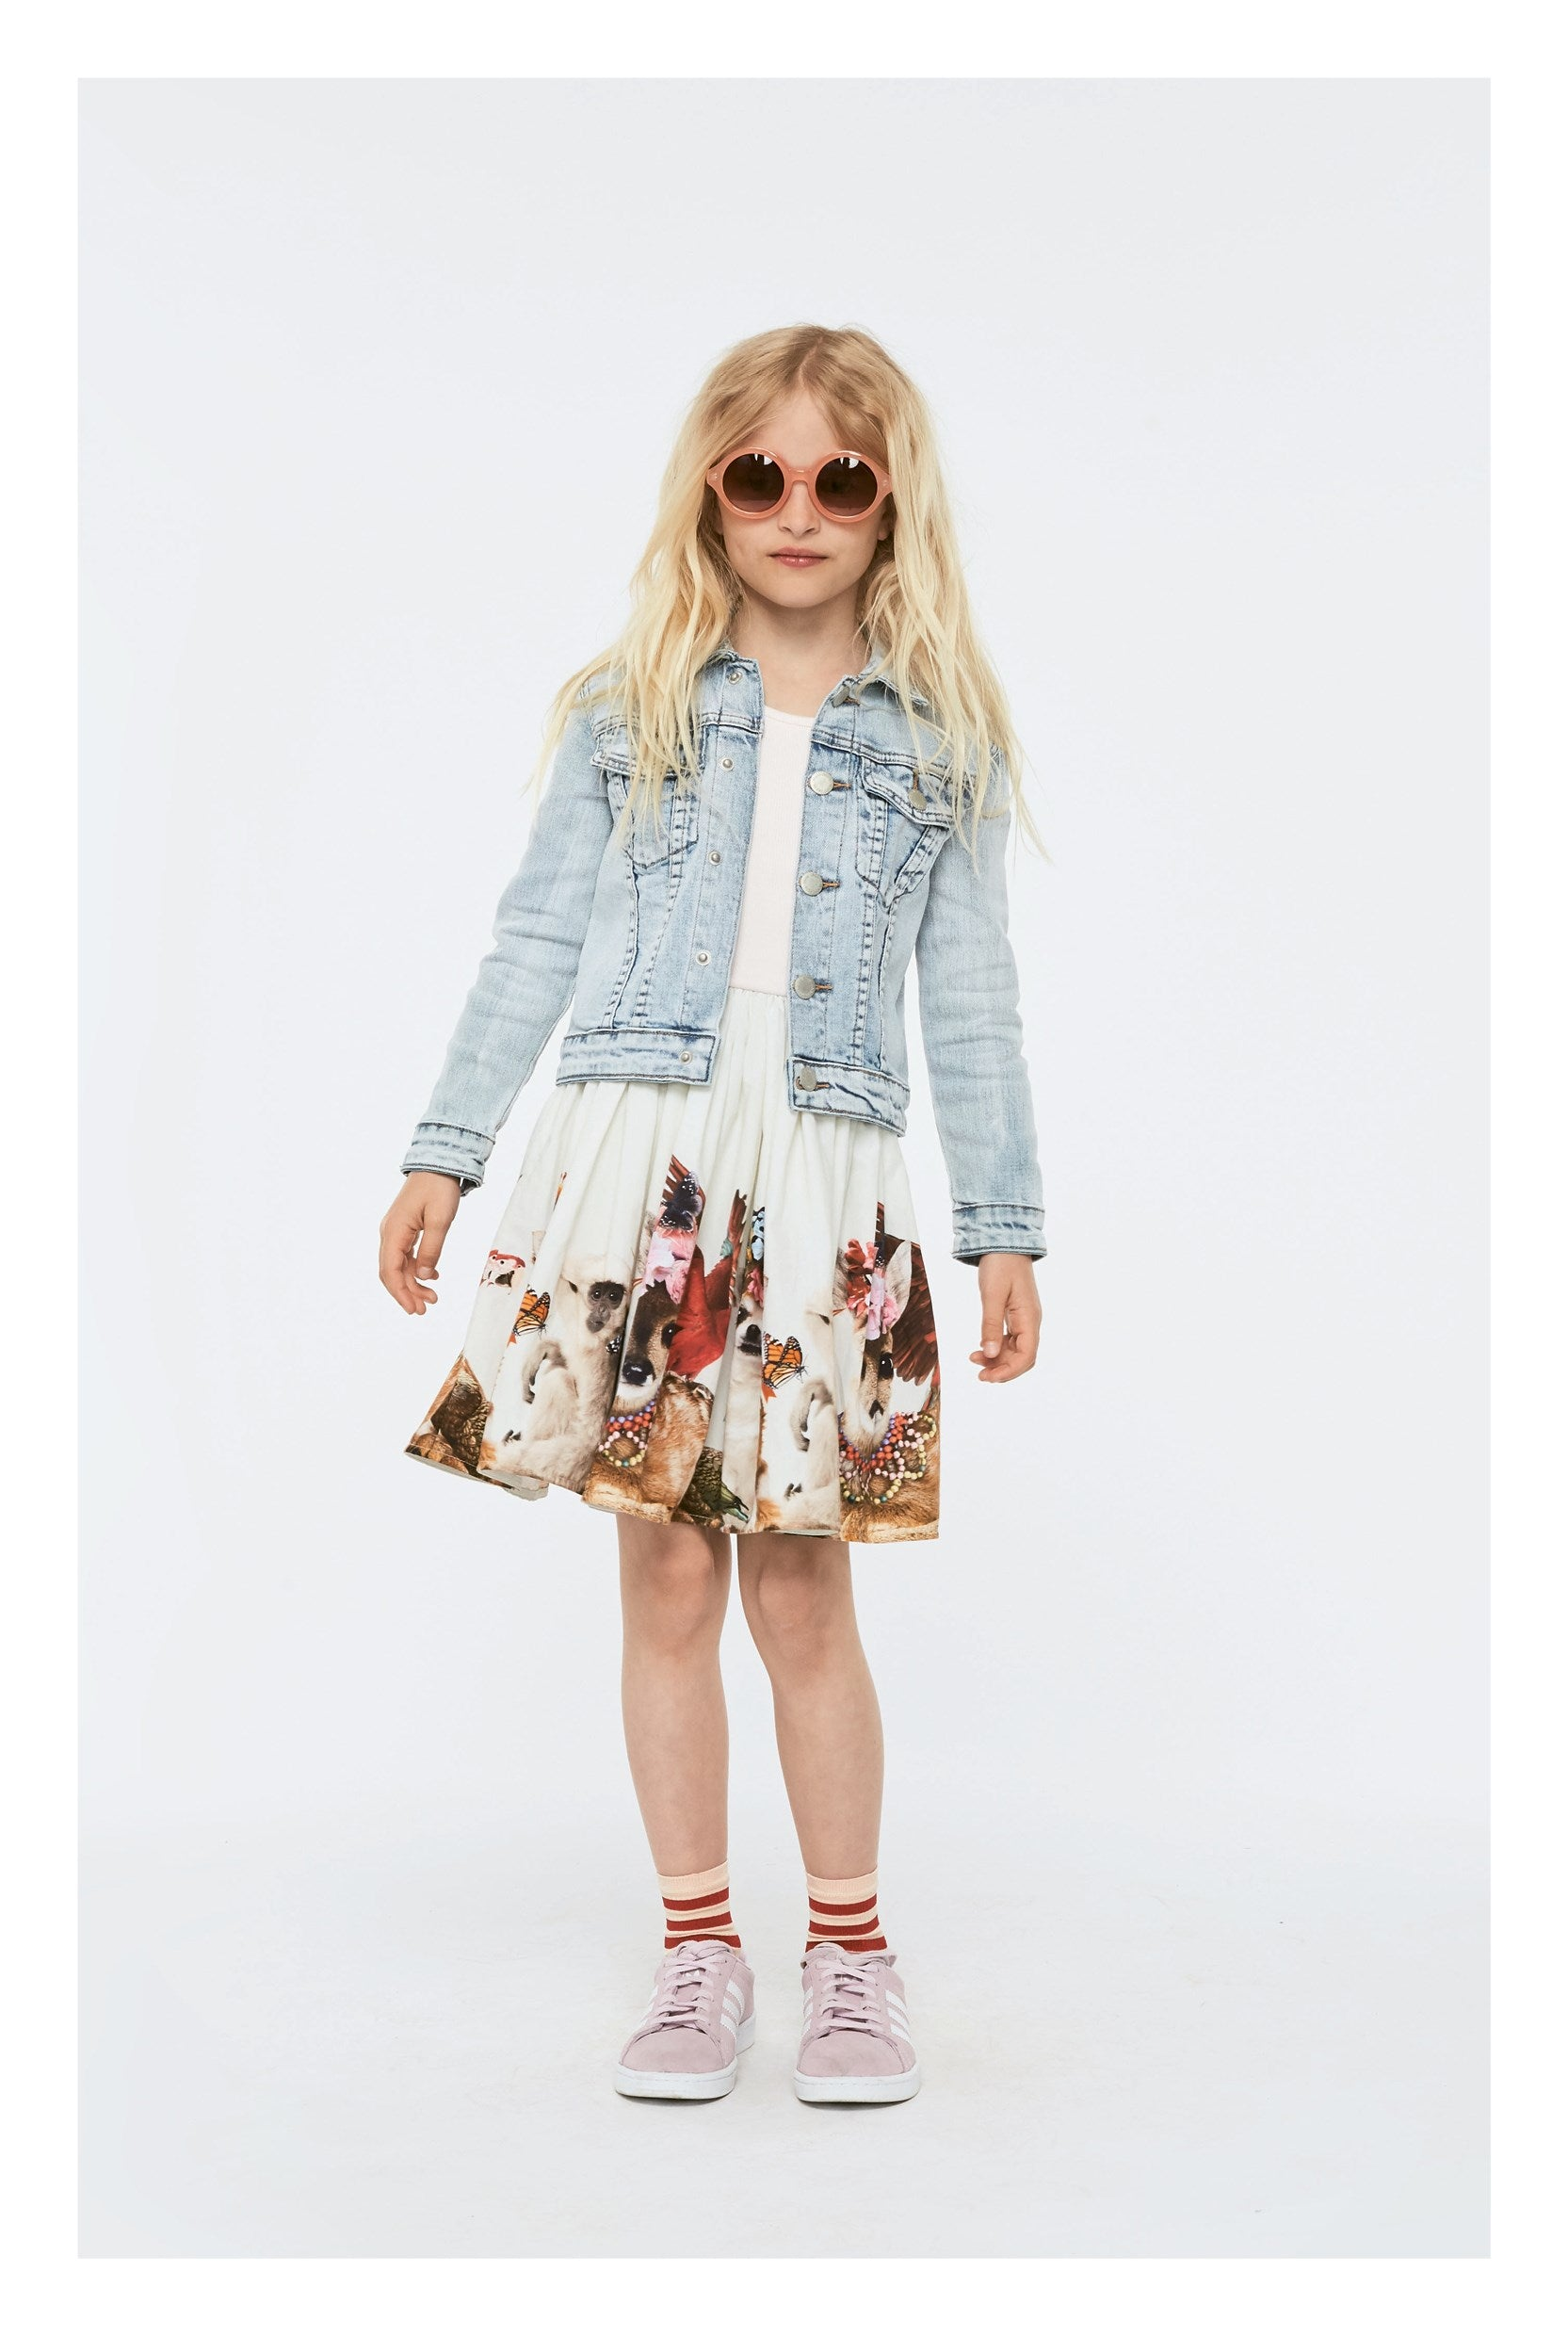 Designer Kids Fashion at Bloom Moda Online Children's Boutique - Molo Cassandra Dress,  Dress